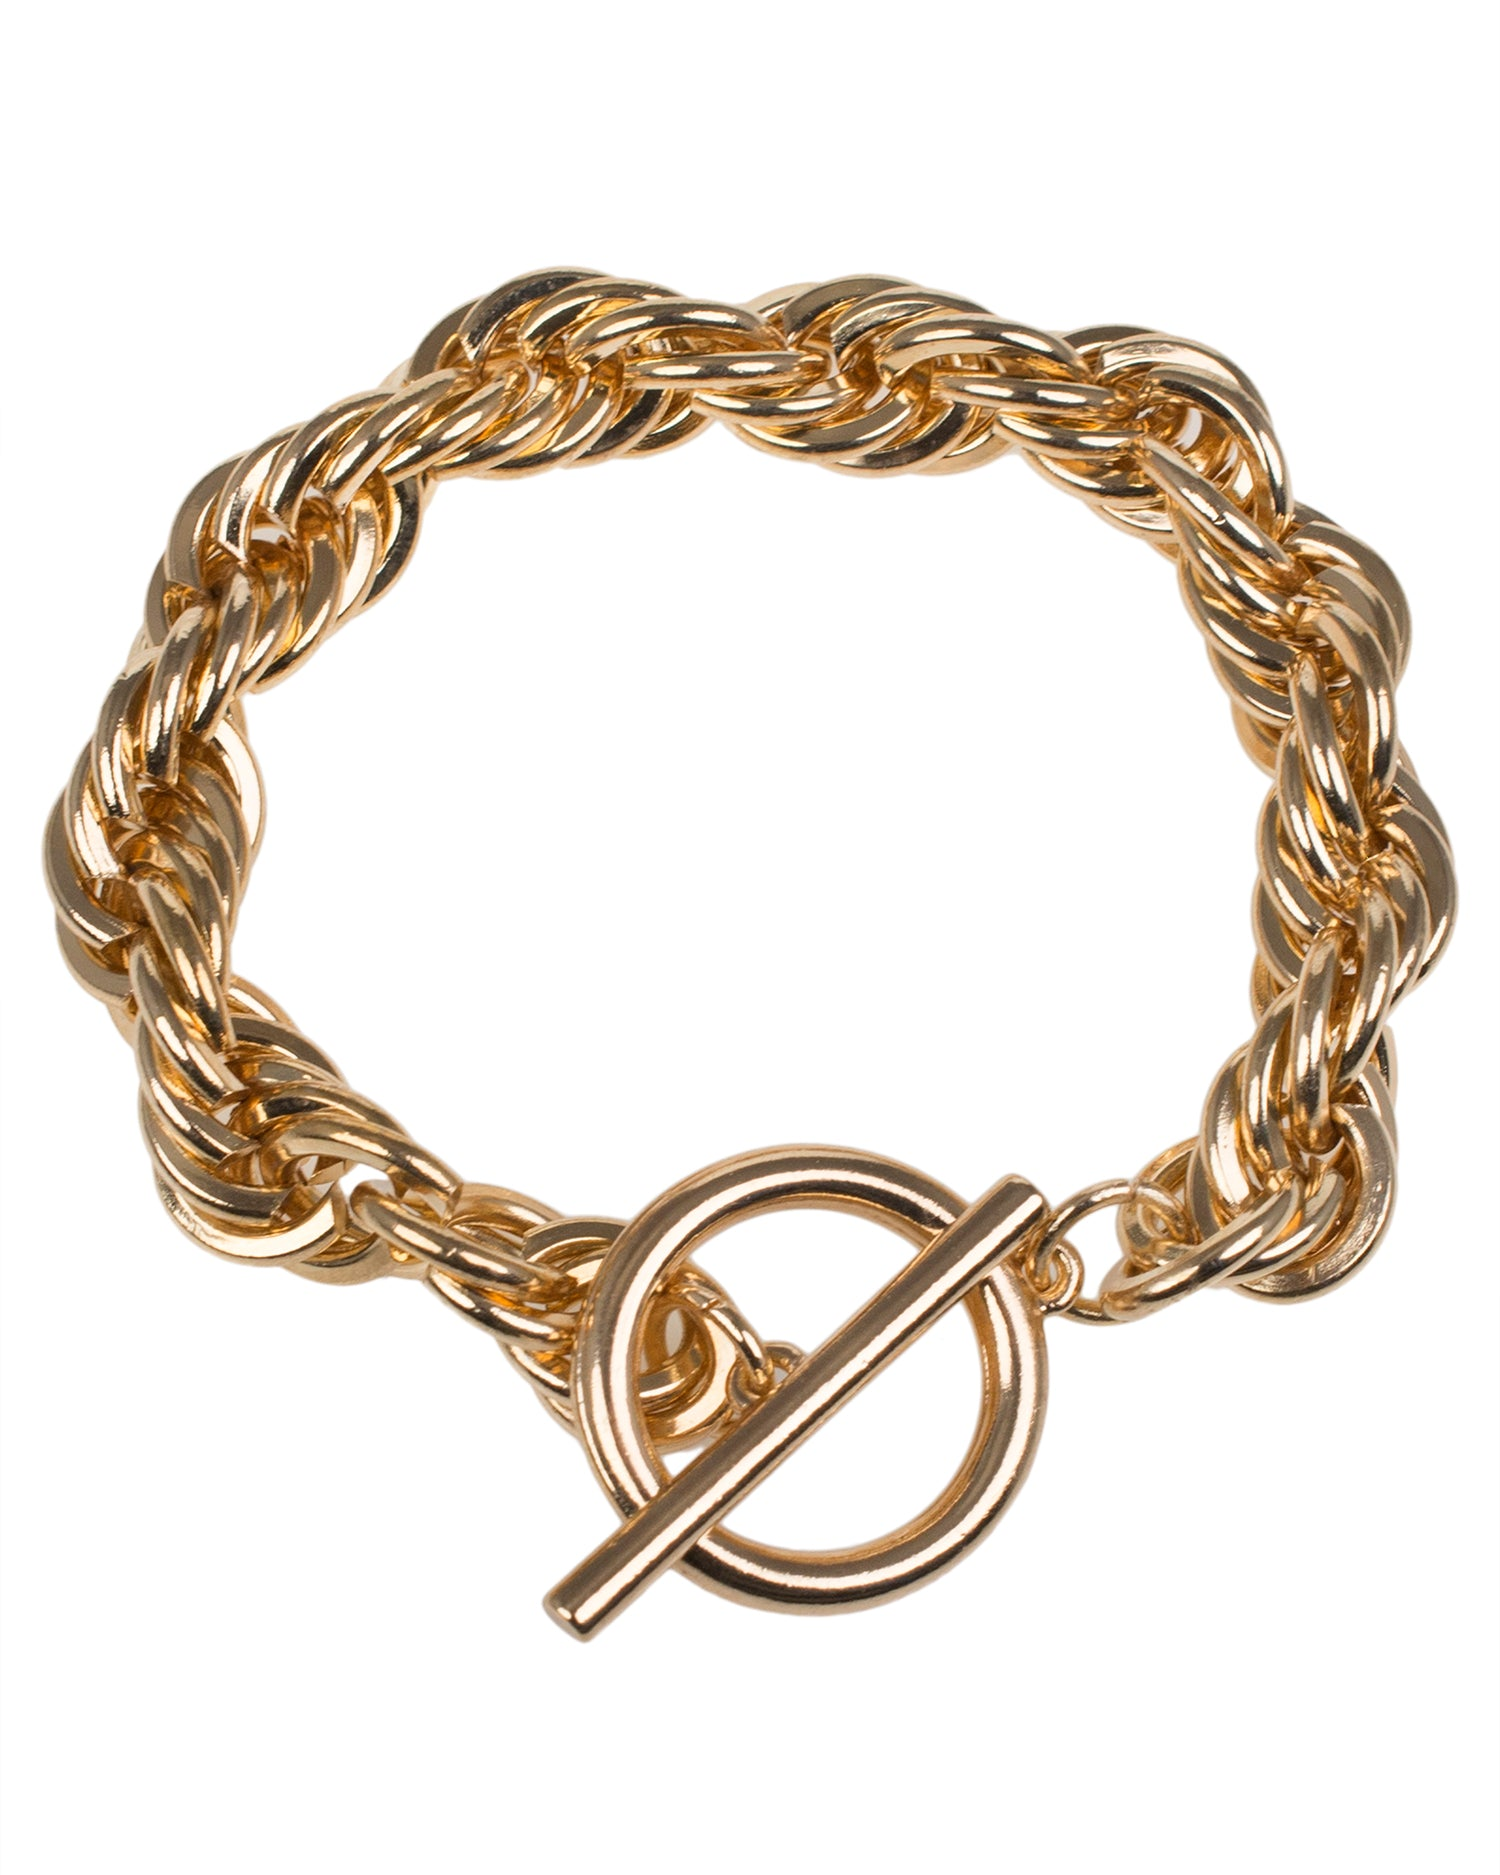 Gold Plated Rope Chain Bracelet